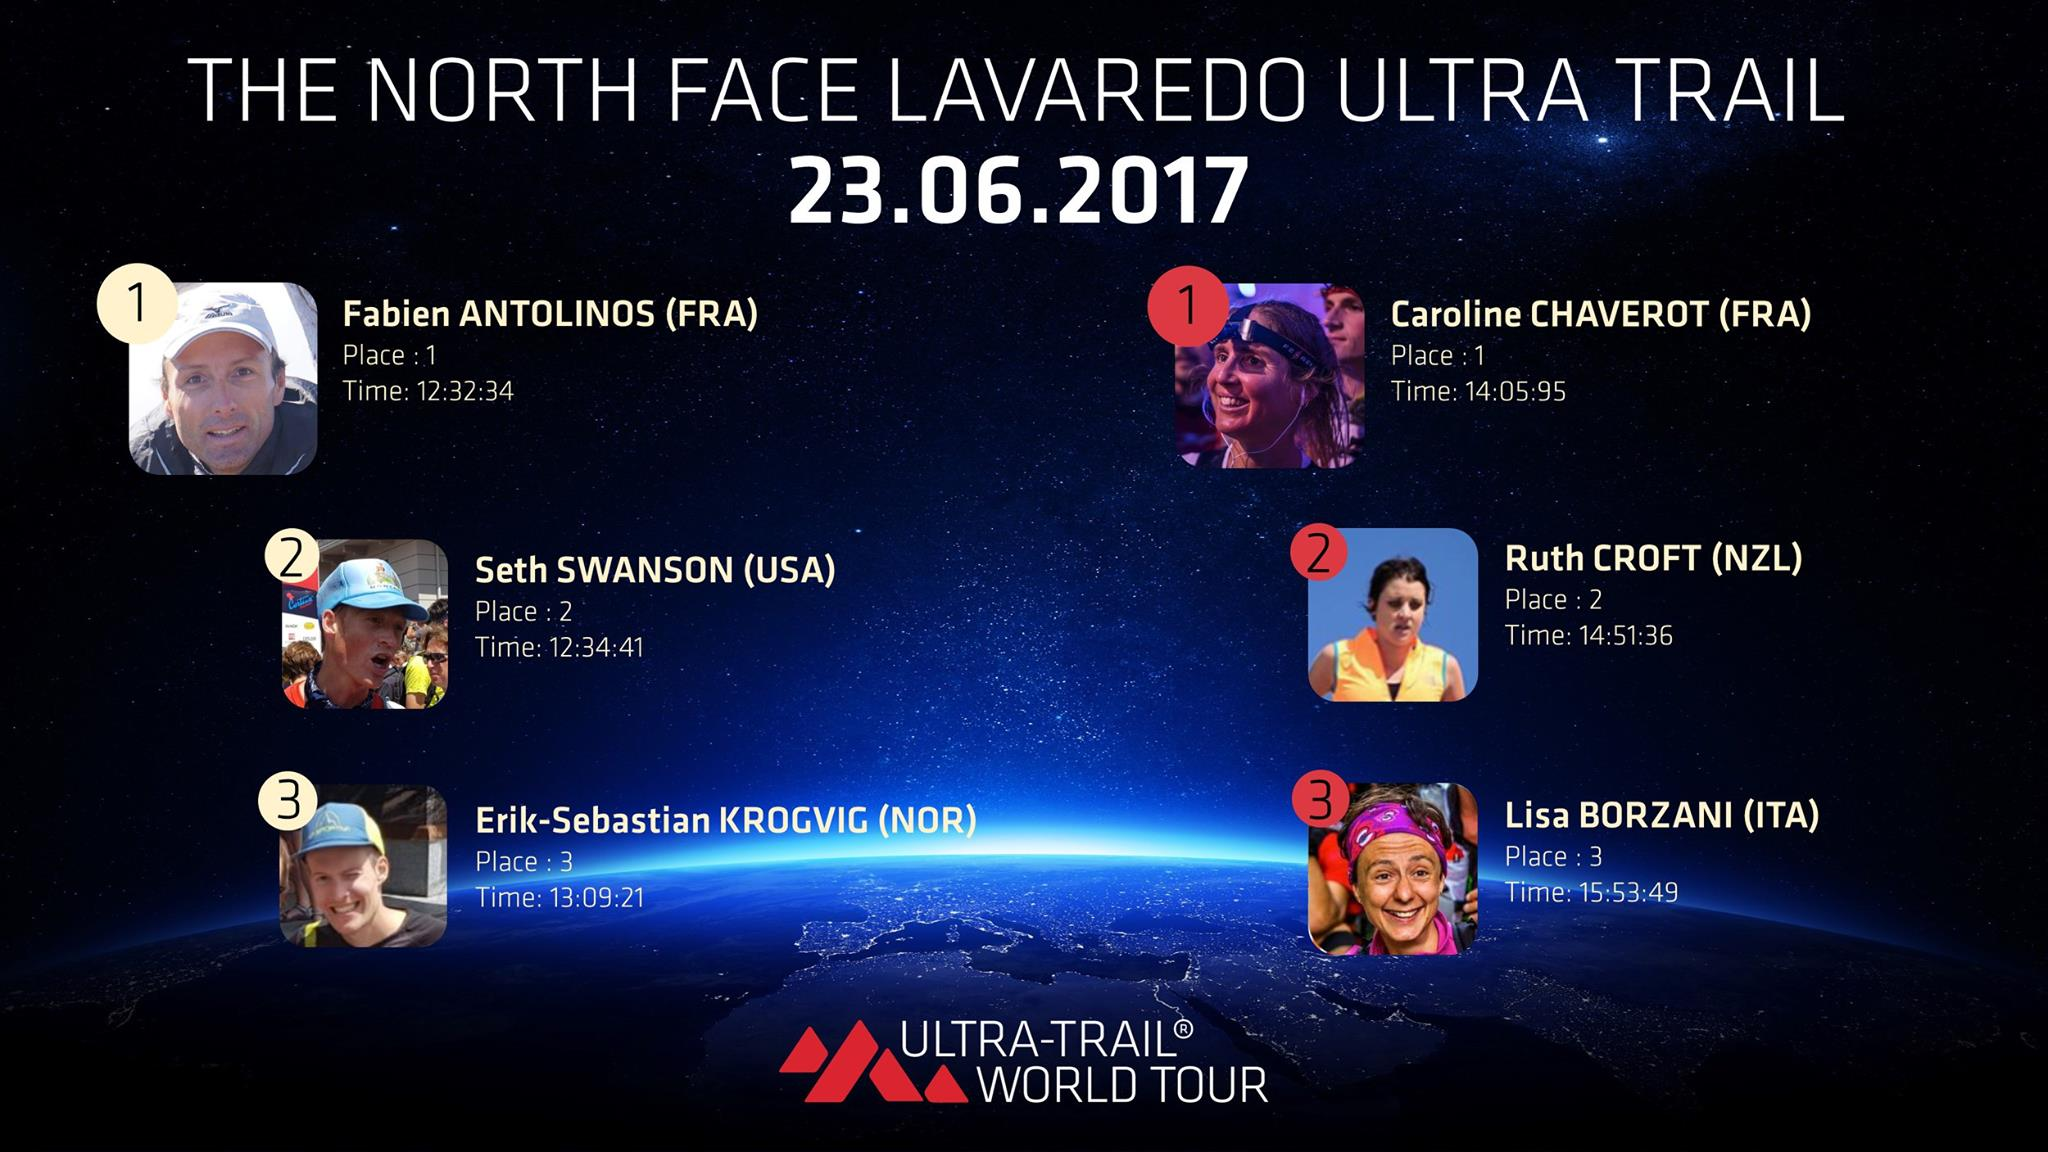 Expresky z hôr 68 - The North Face Lavaredo Ultra Trail 2017, zdroj:Ultra-Trail World Tour